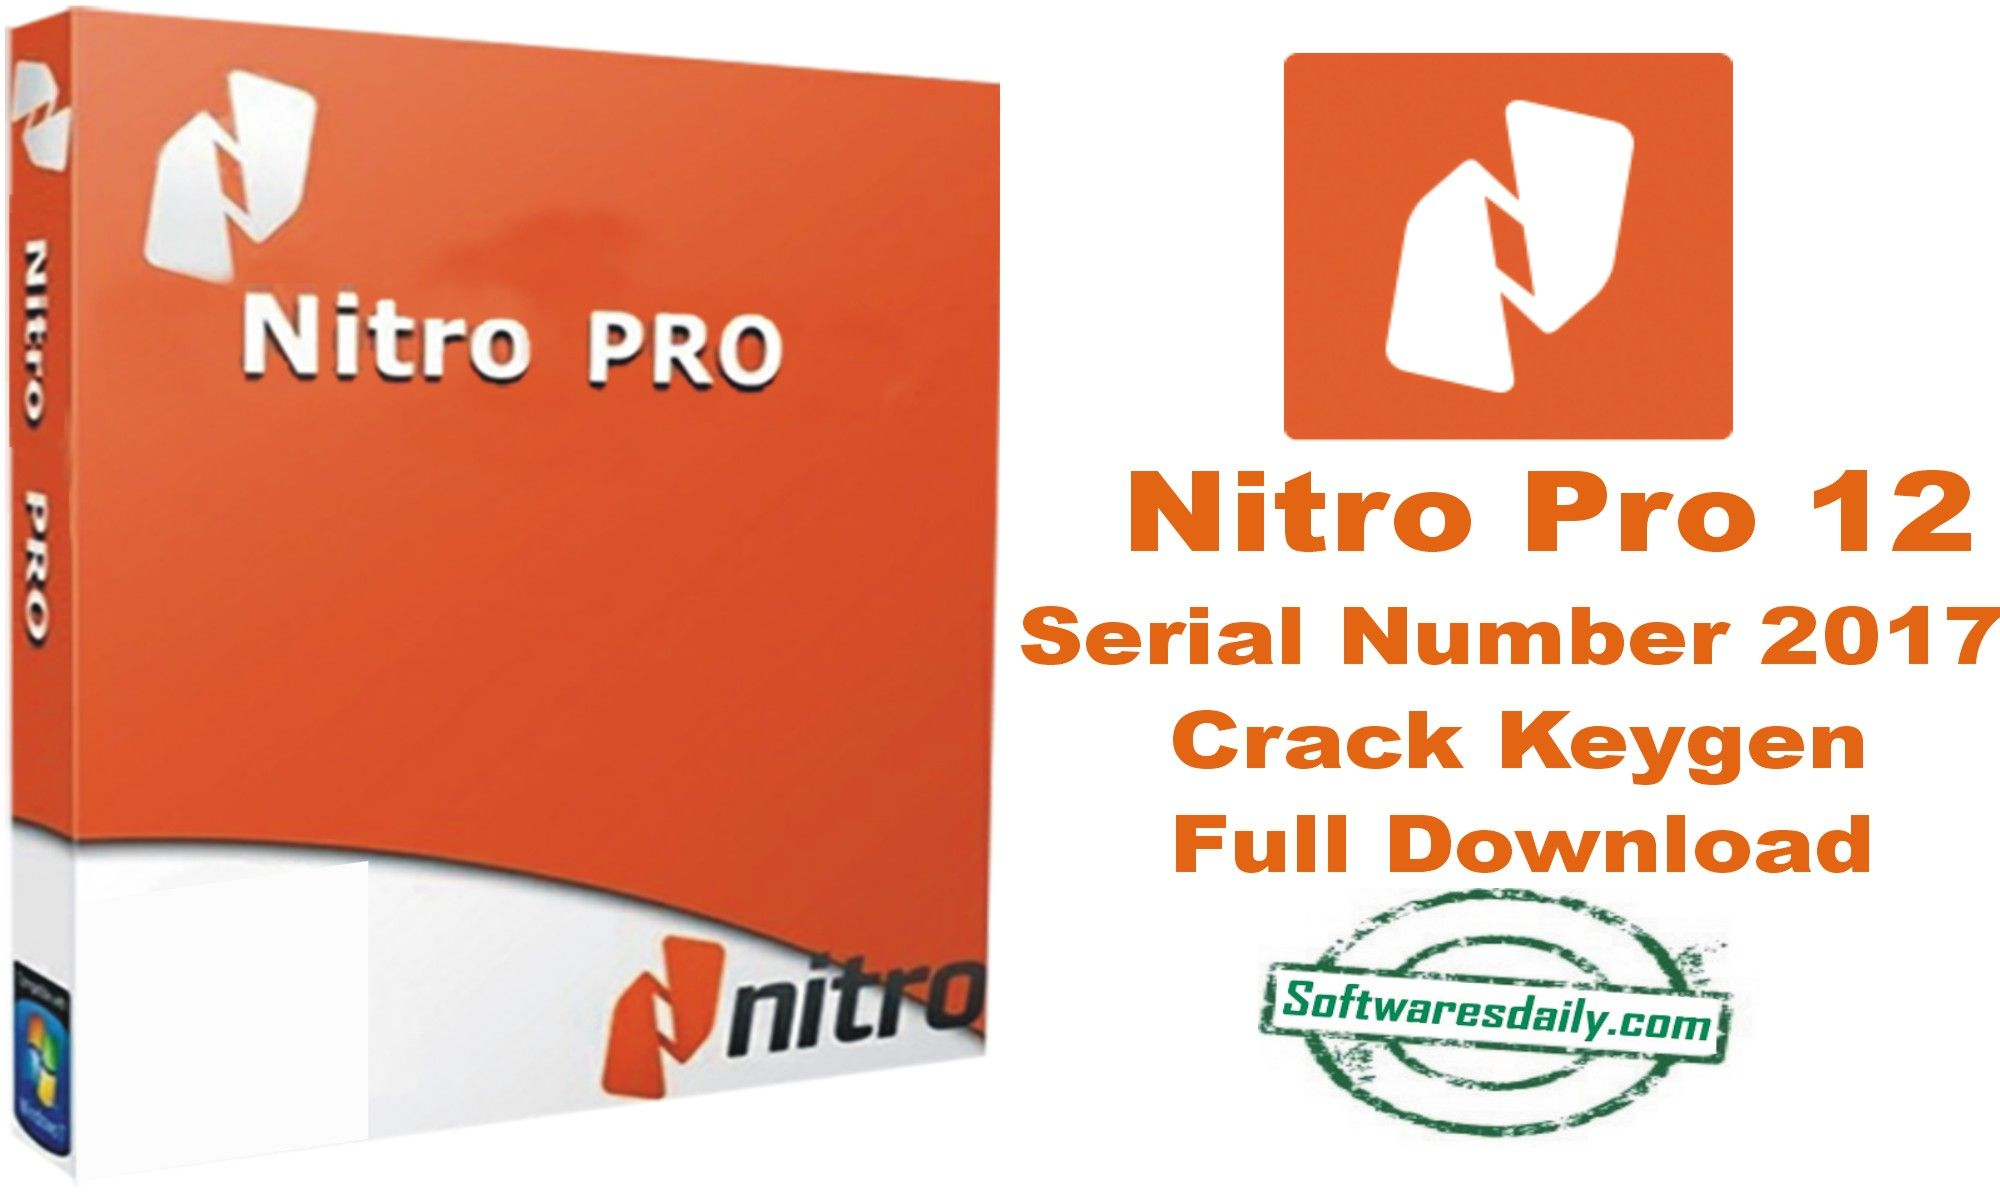 nitro pro 8 free download for windows 7 64 bit crack